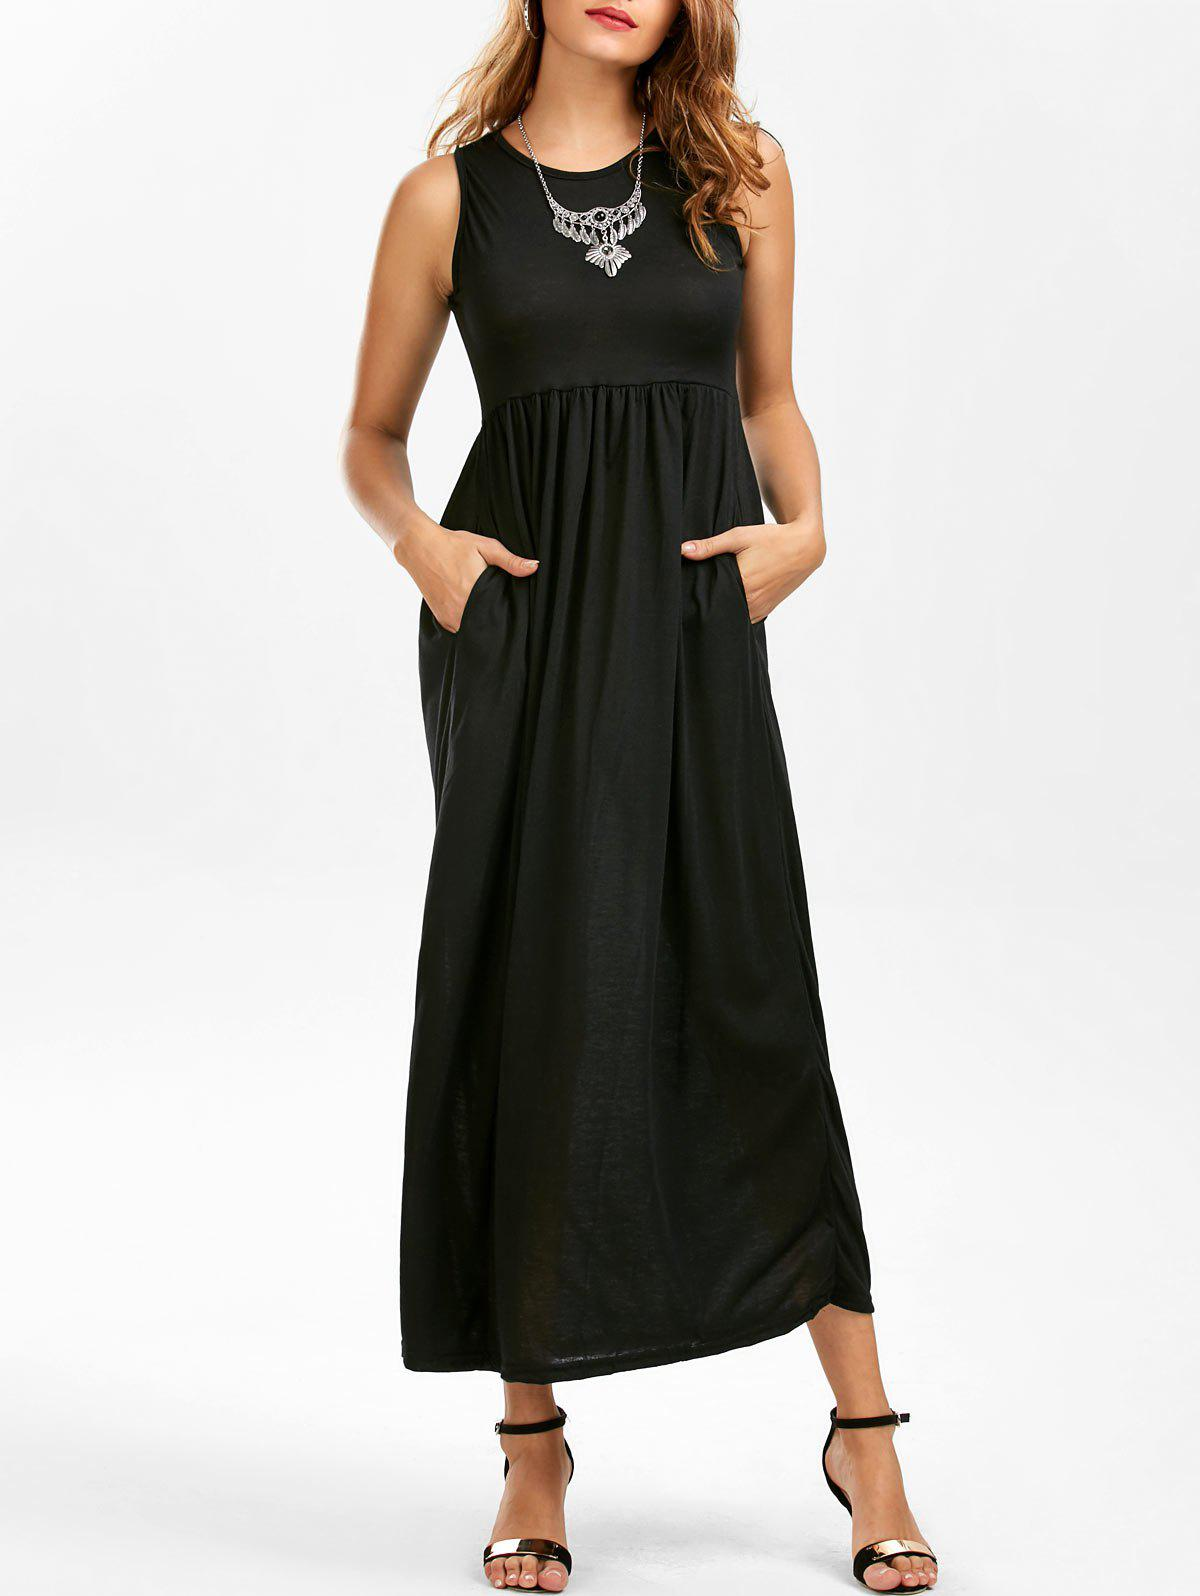 More Details Rachel Pally Long Sleeveless Empire-Waist Caftan Dress, Plus Size Details Rachel Pally maxi dress in stretch jersey with shirring detail. Approx.